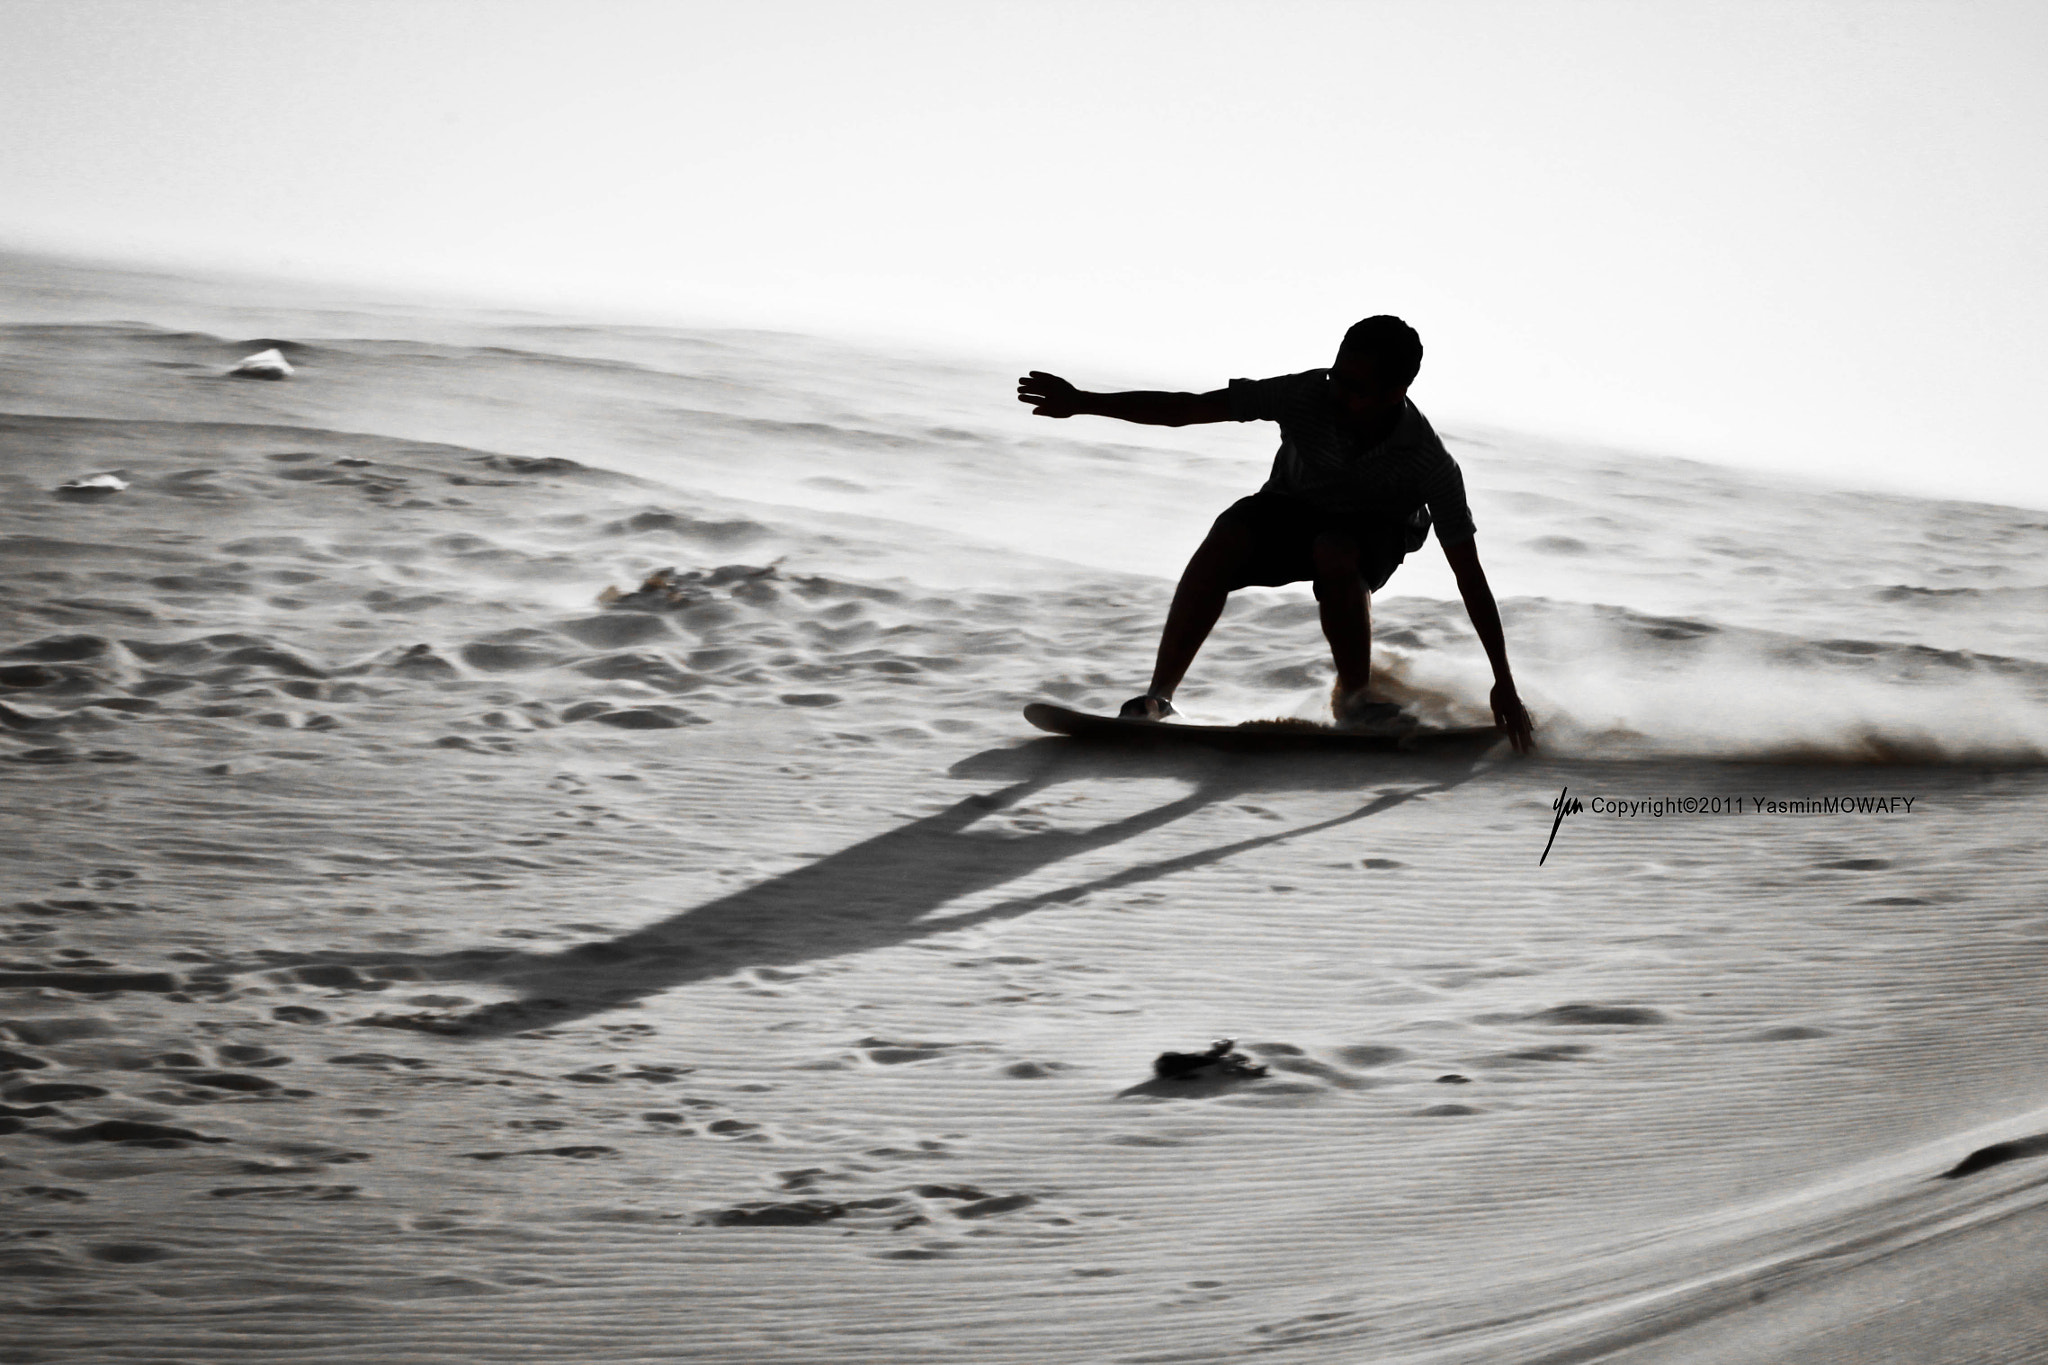 Photograph Sandboarding by Yasmin Mowafy on 500px